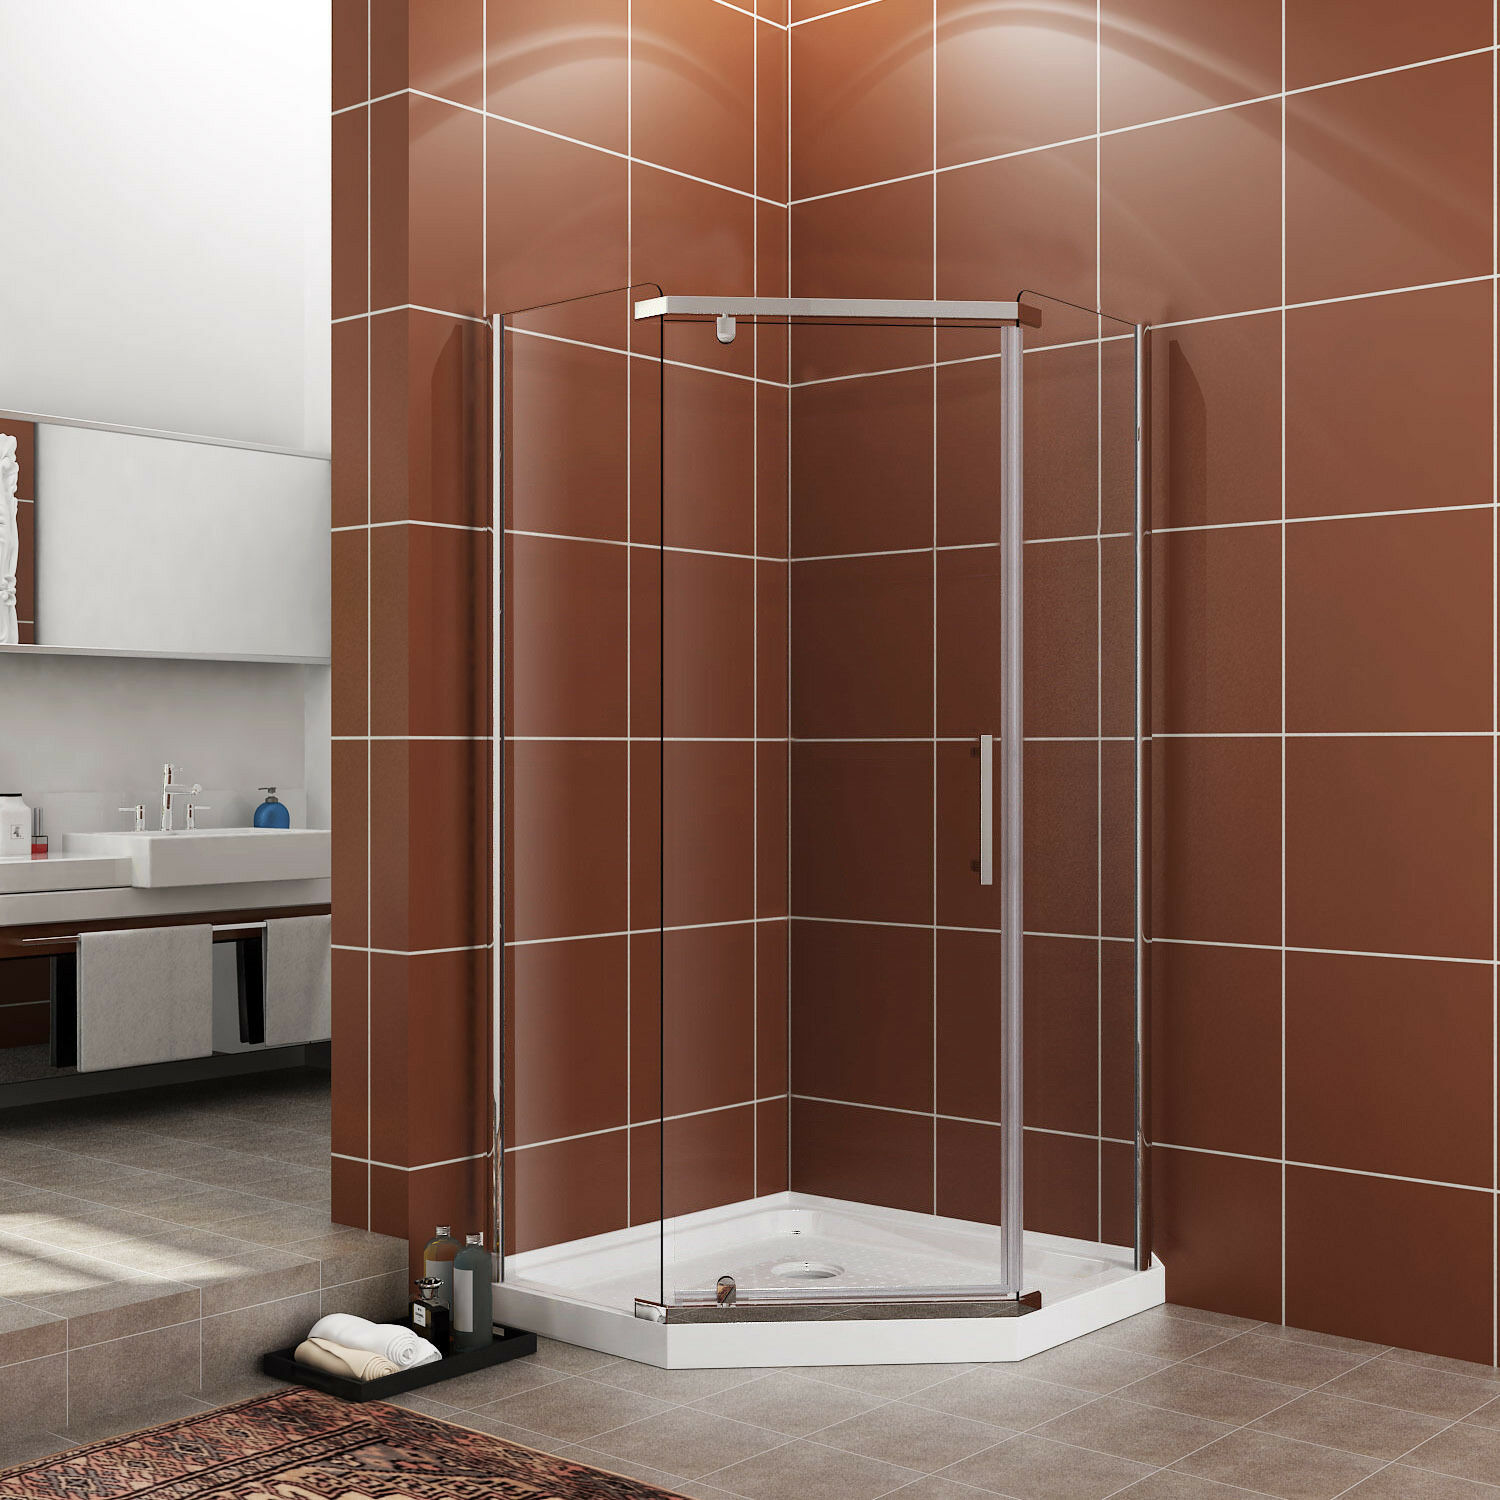 SUNNY SHOWER Neo-Angle Semi-Frameless Corner Shower door Enclosure ...